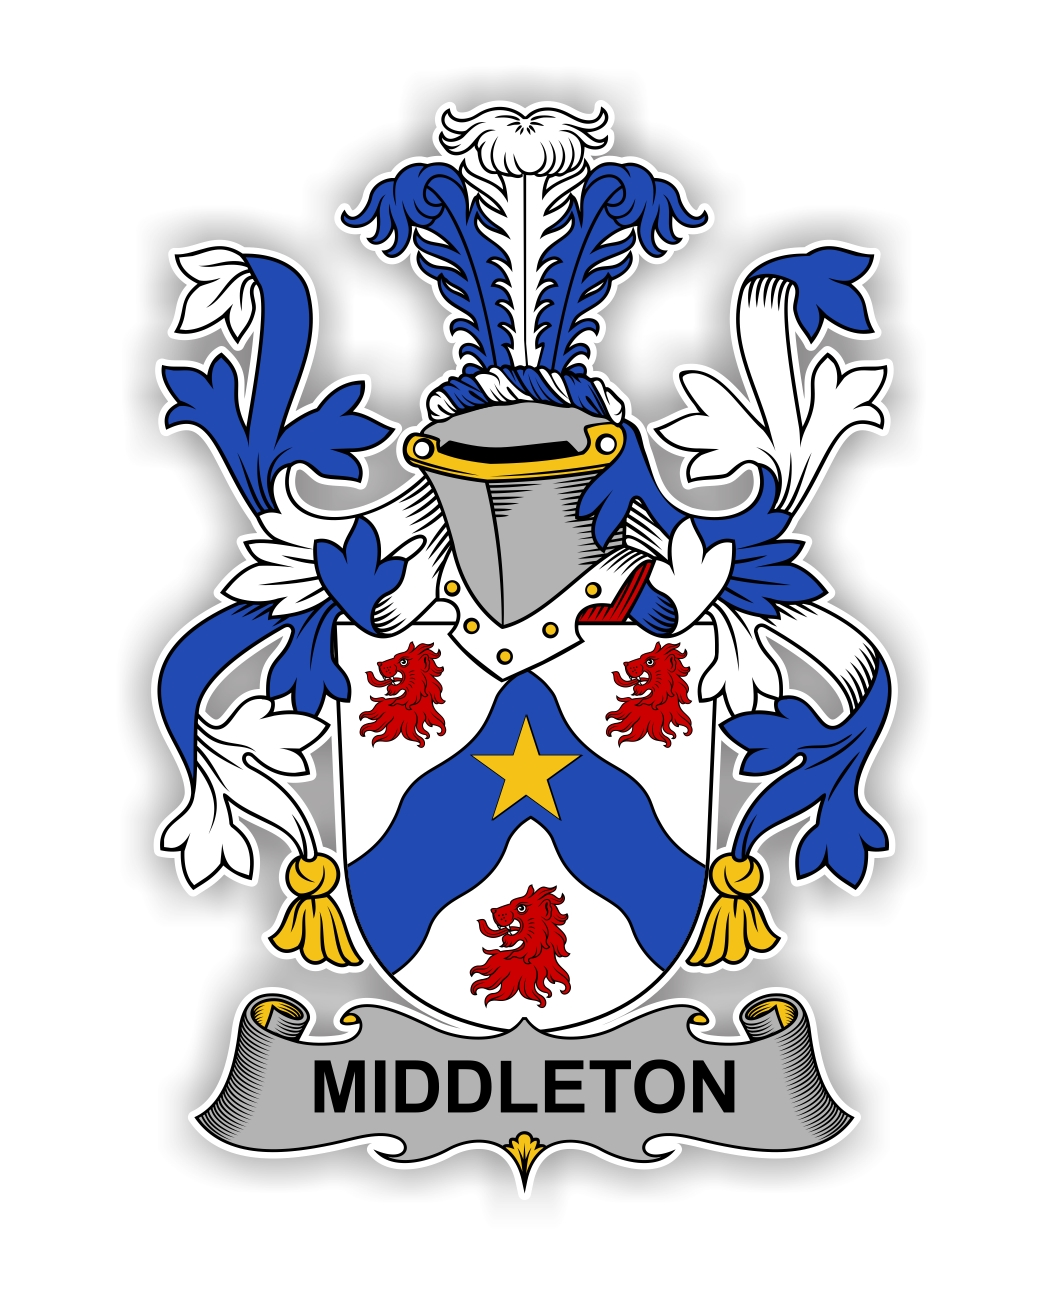 Middleton Family Crest Vinyl Die Cut Decal Sticker 4